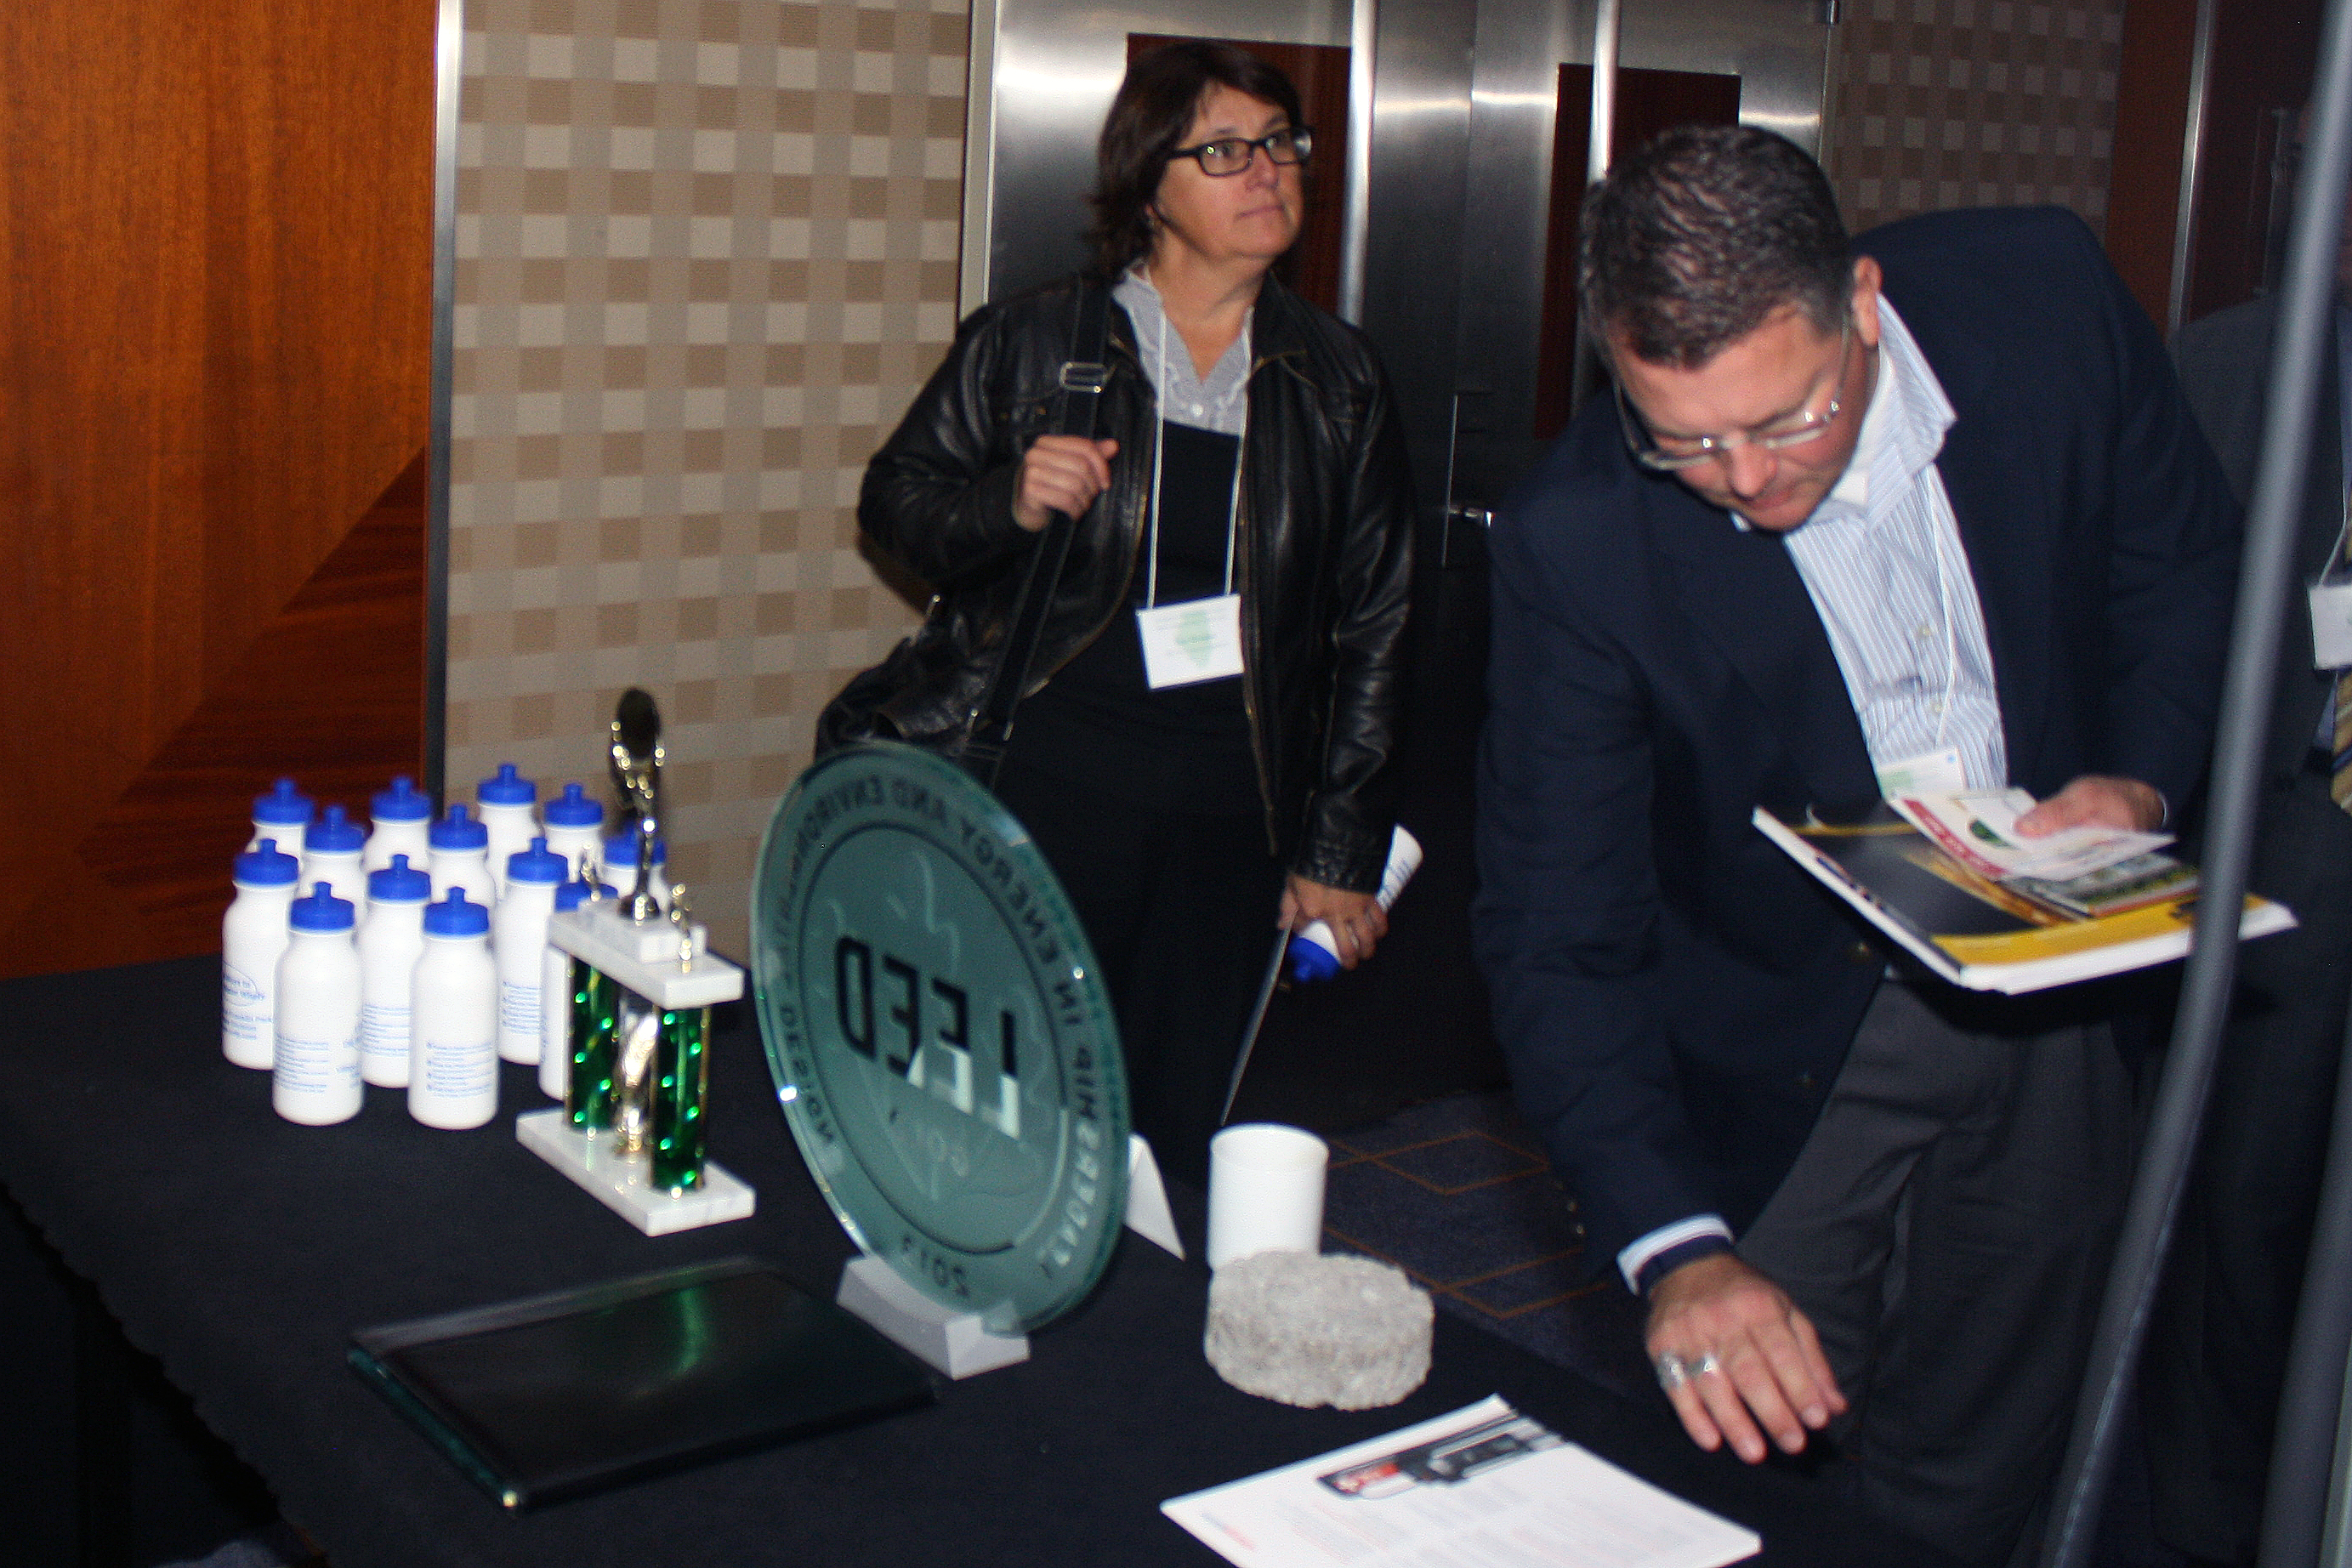 attendees taking pamphlets from a display table with a LEED cerdifed plaque